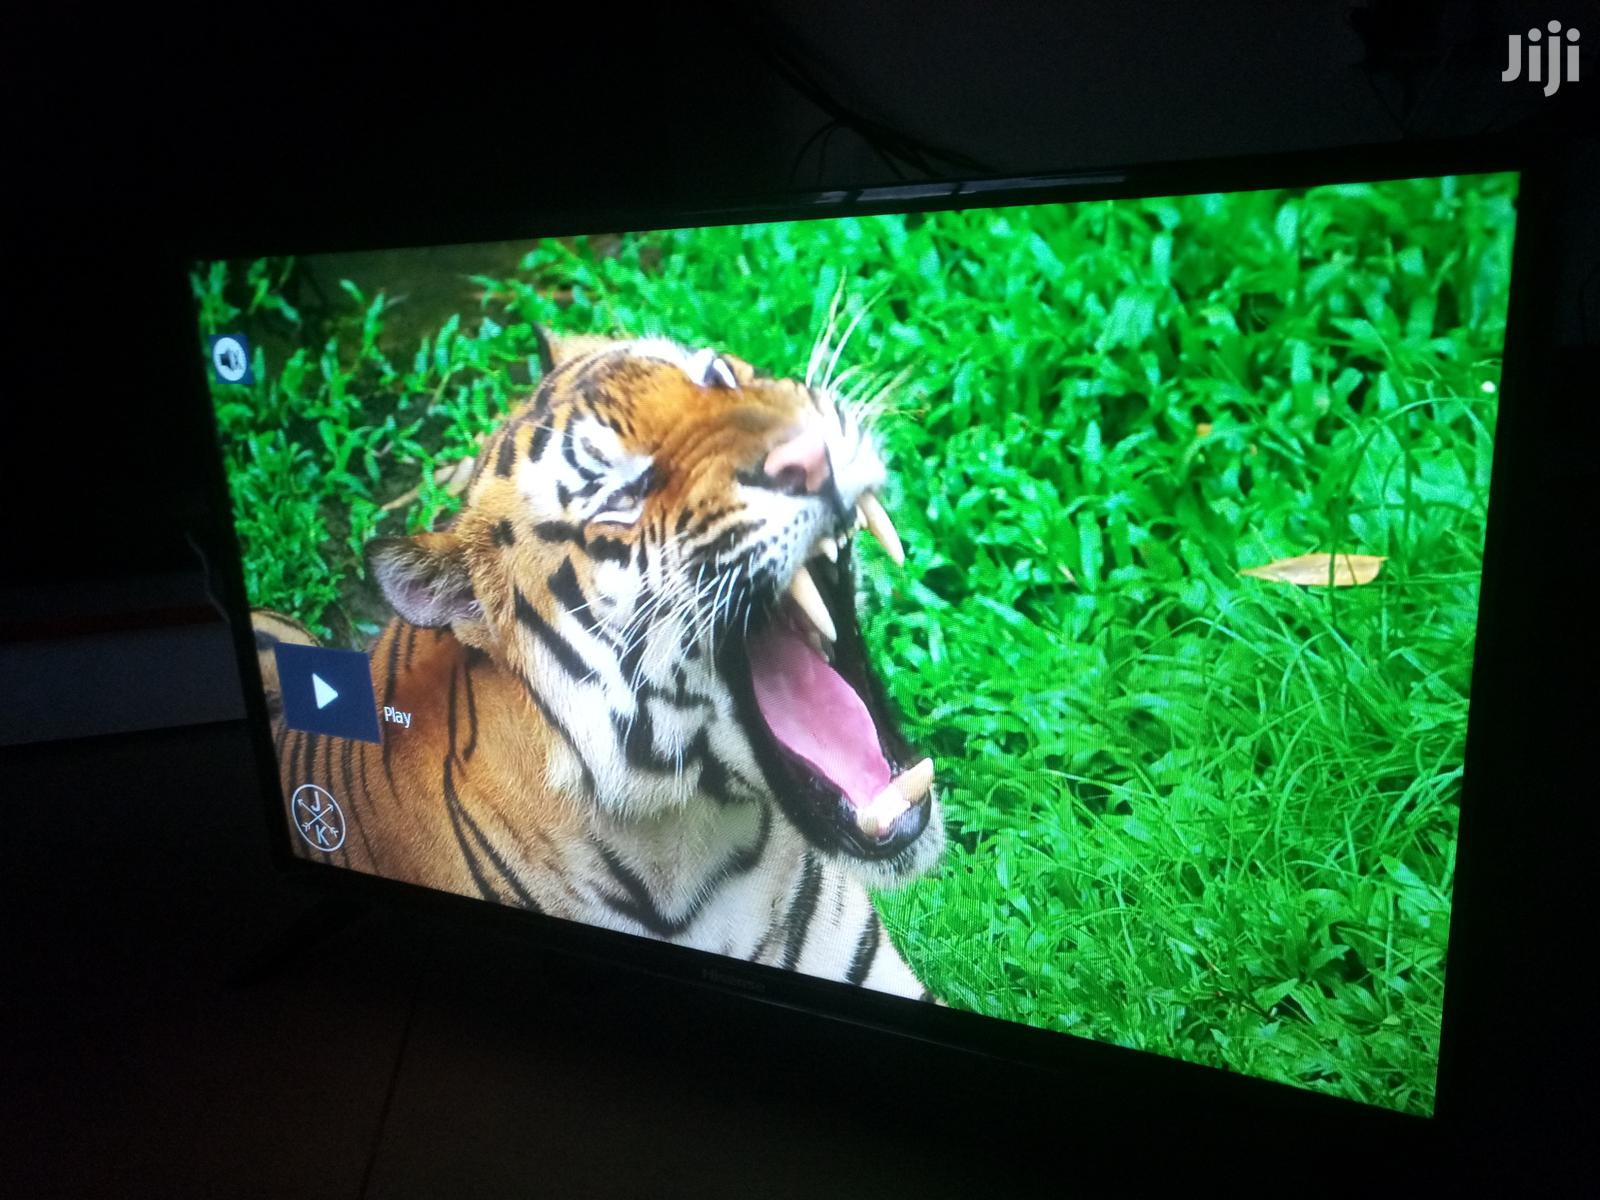 Hisense Flat Screen Digital TV 32 Inches | TV & DVD Equipment for sale in Kampala, Central Region, Uganda